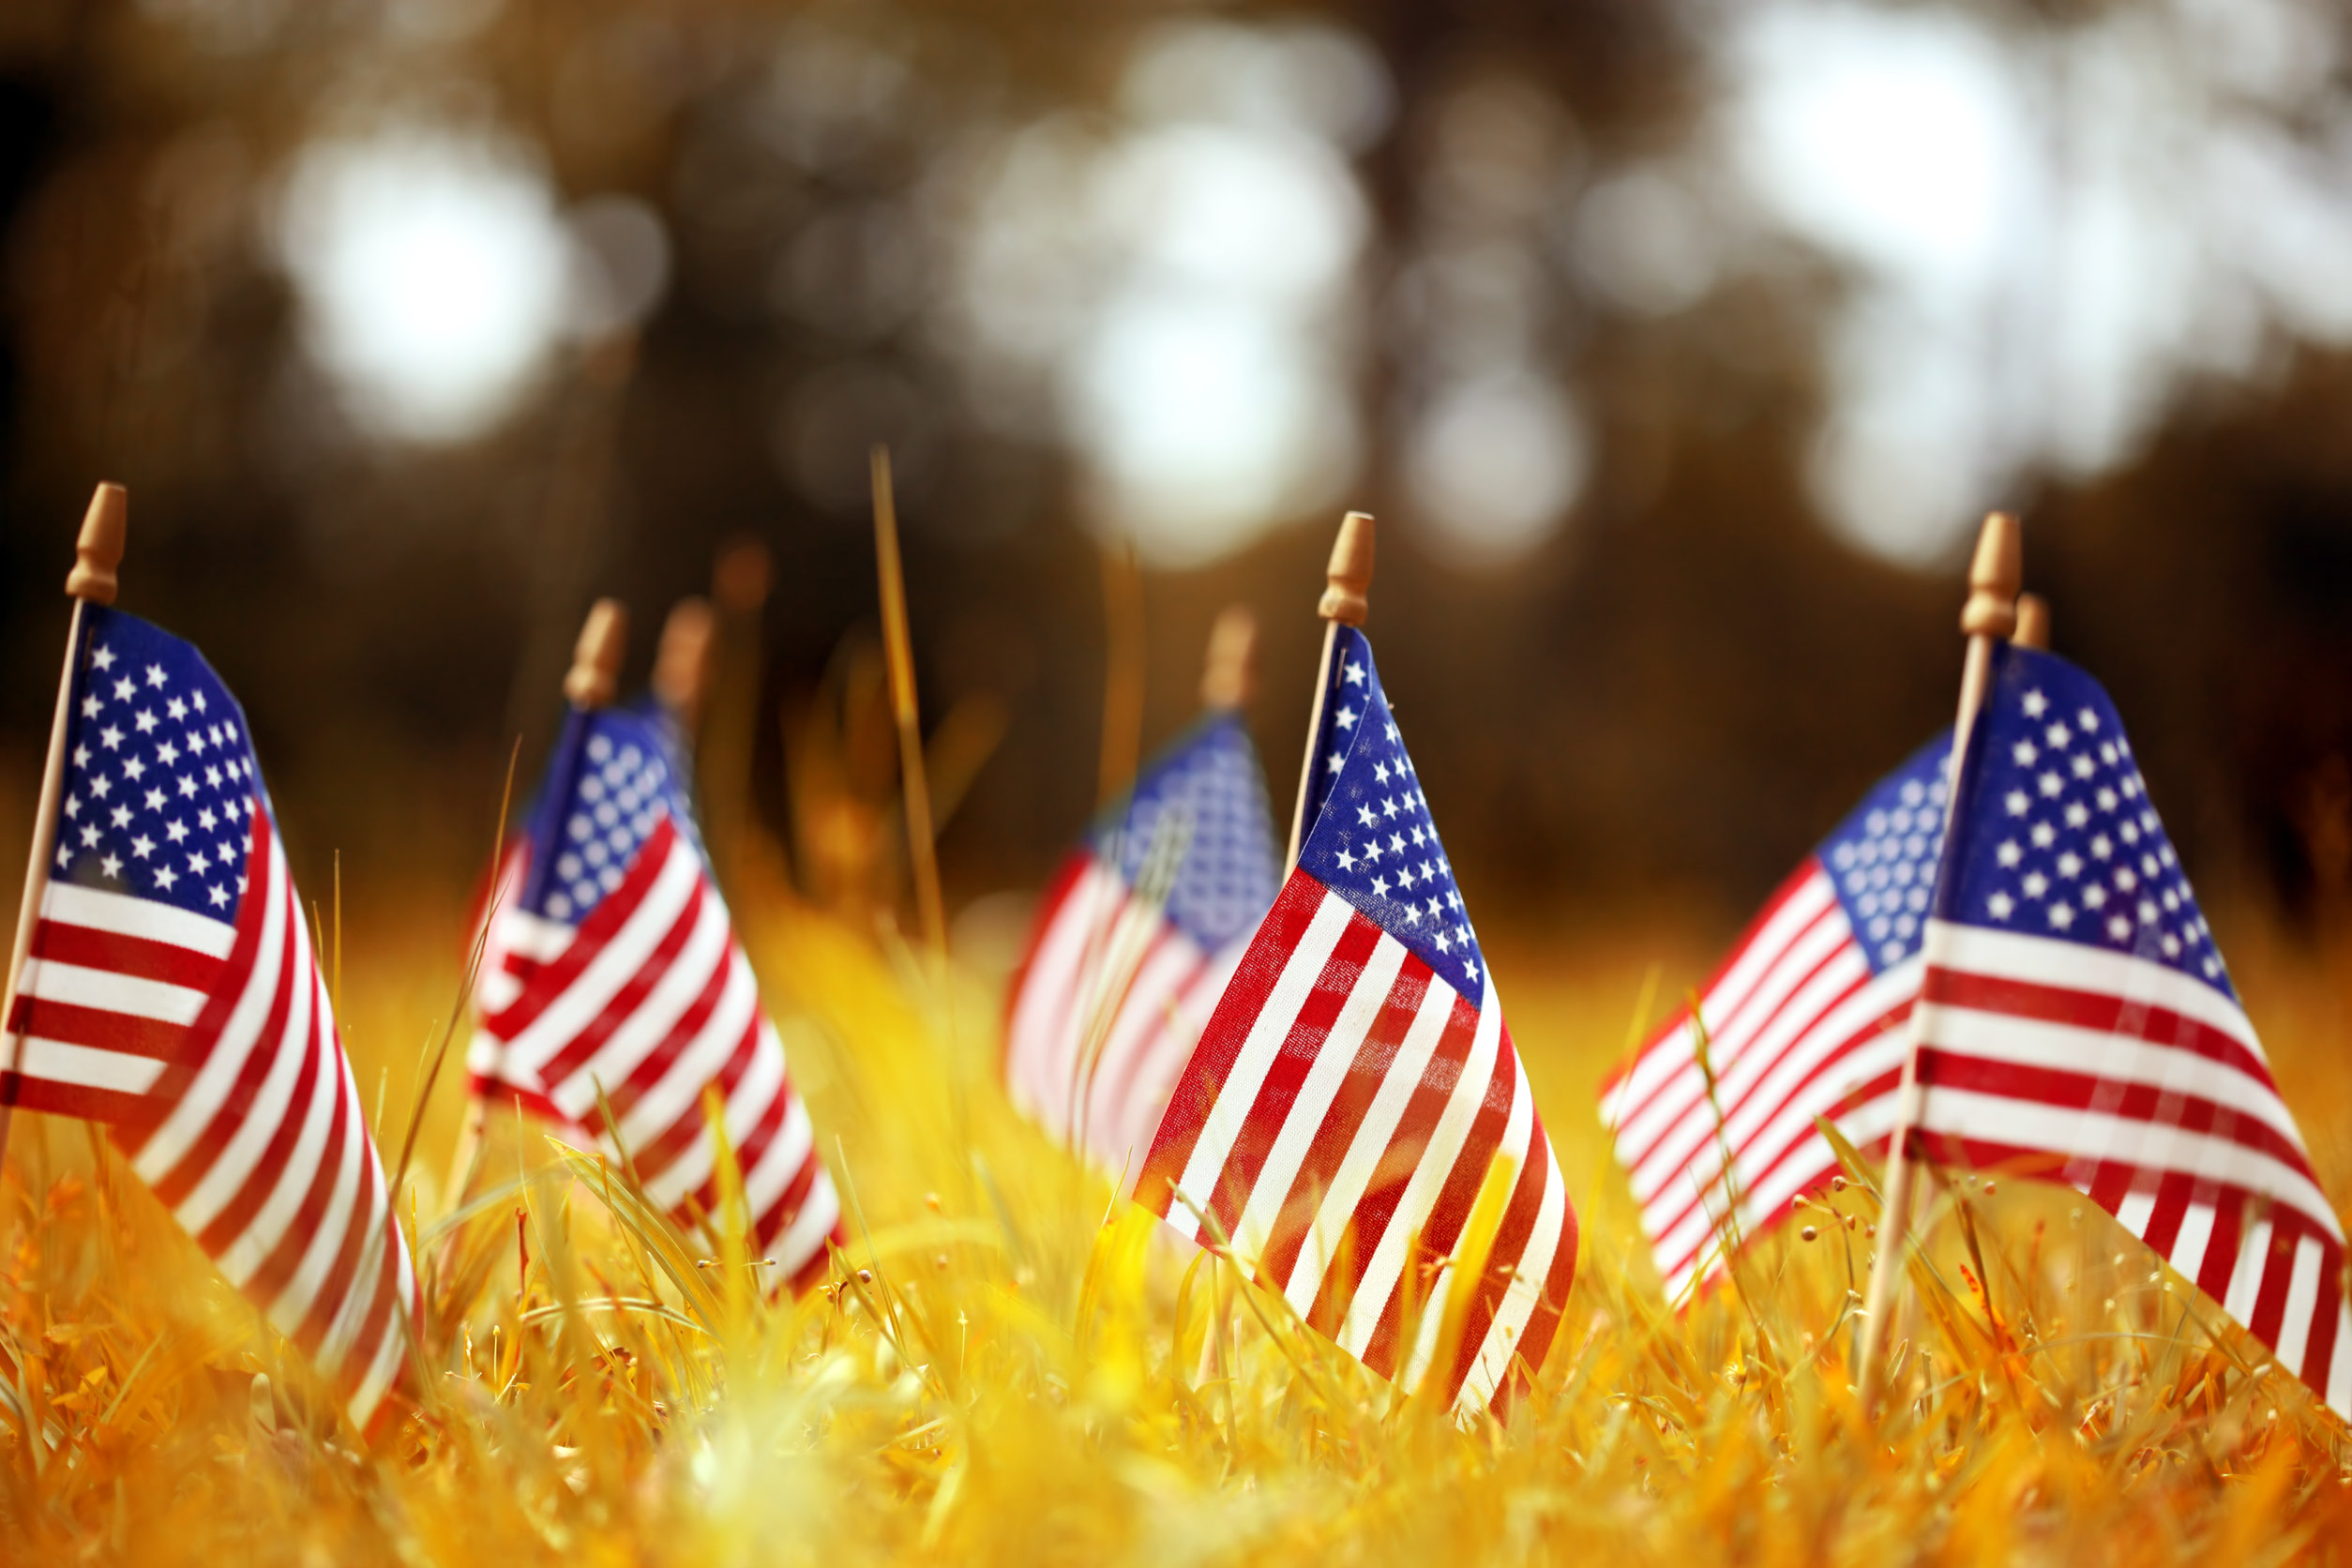 American flags in autumn grass